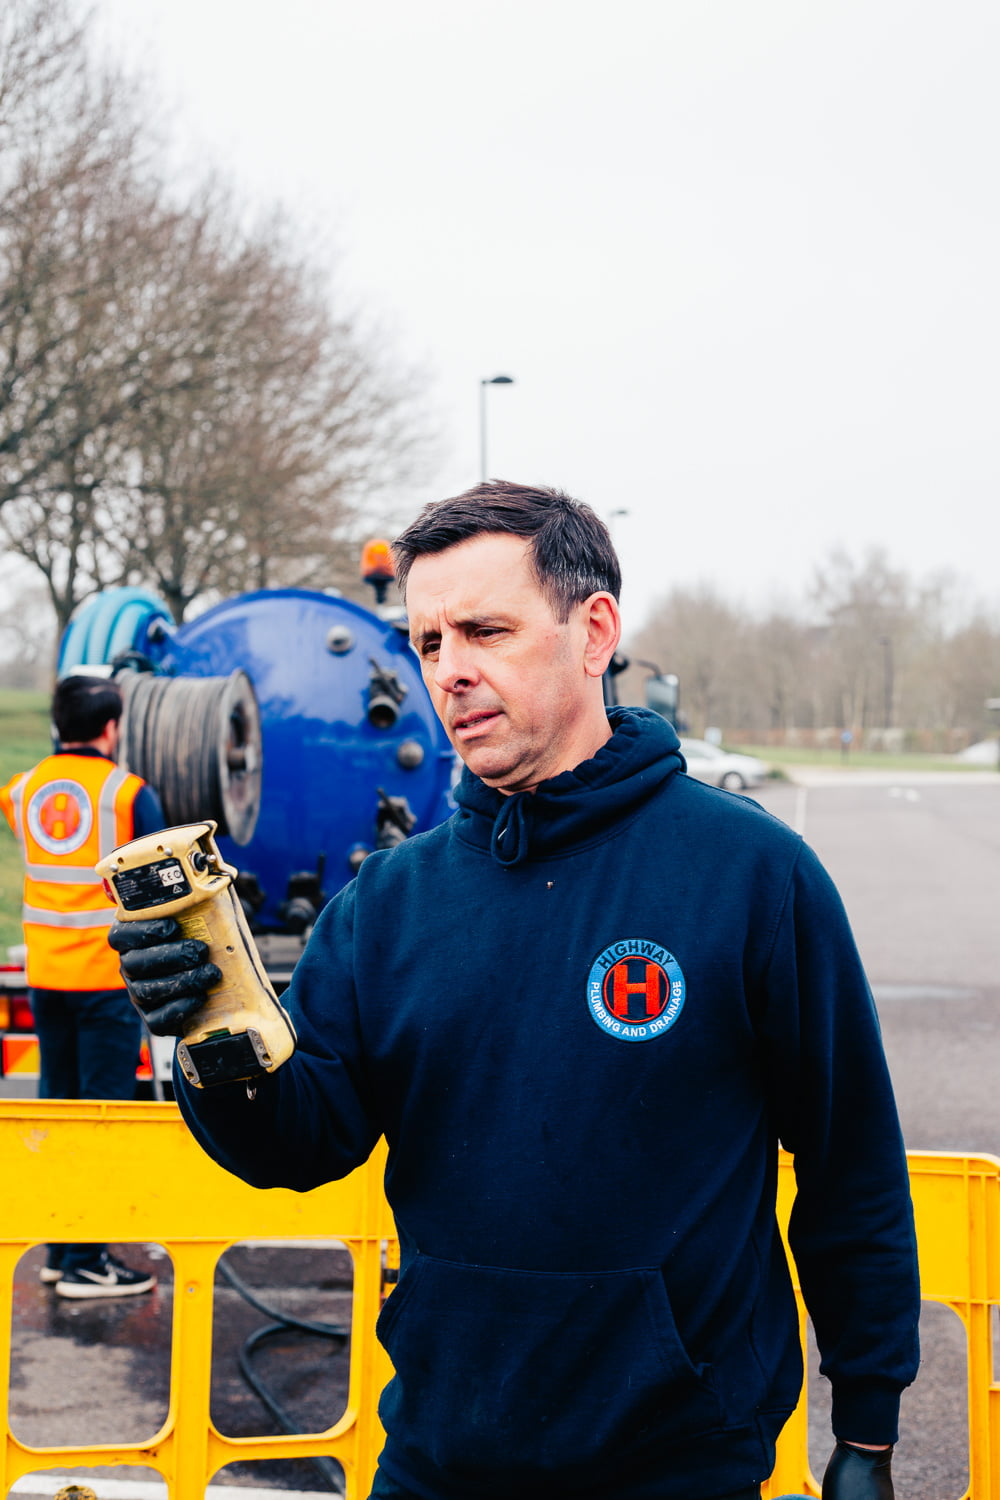 emergency drain clearance london and kent